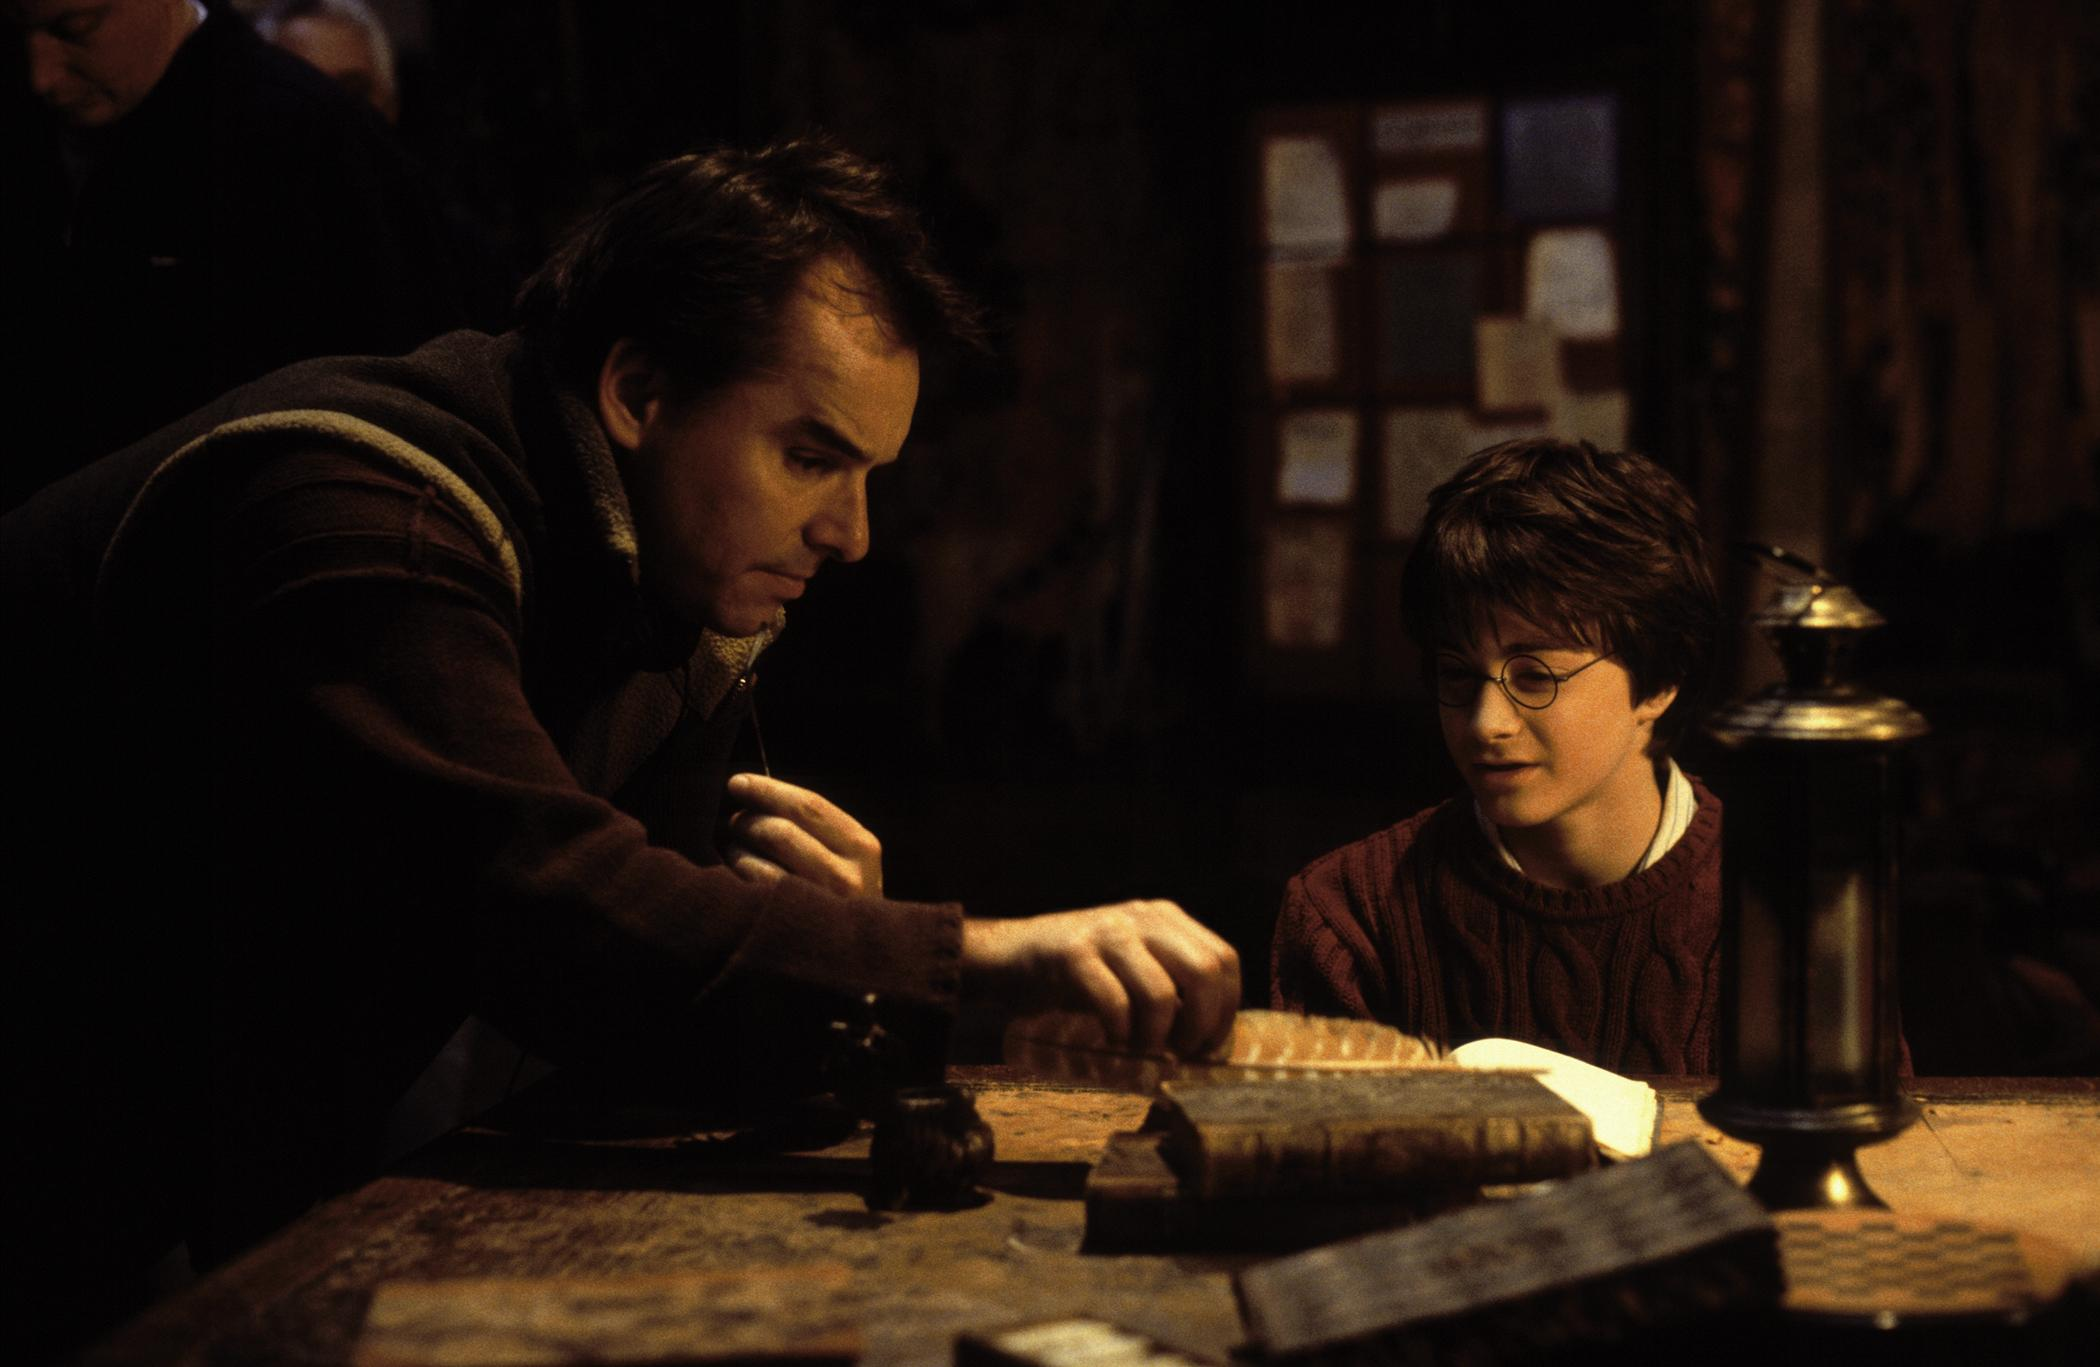 Chris Columbus Daniel Radcliffe on set Harry Potter The Chamber of Secrets camera 20 Things You Might Not Have Realised About The Goonies